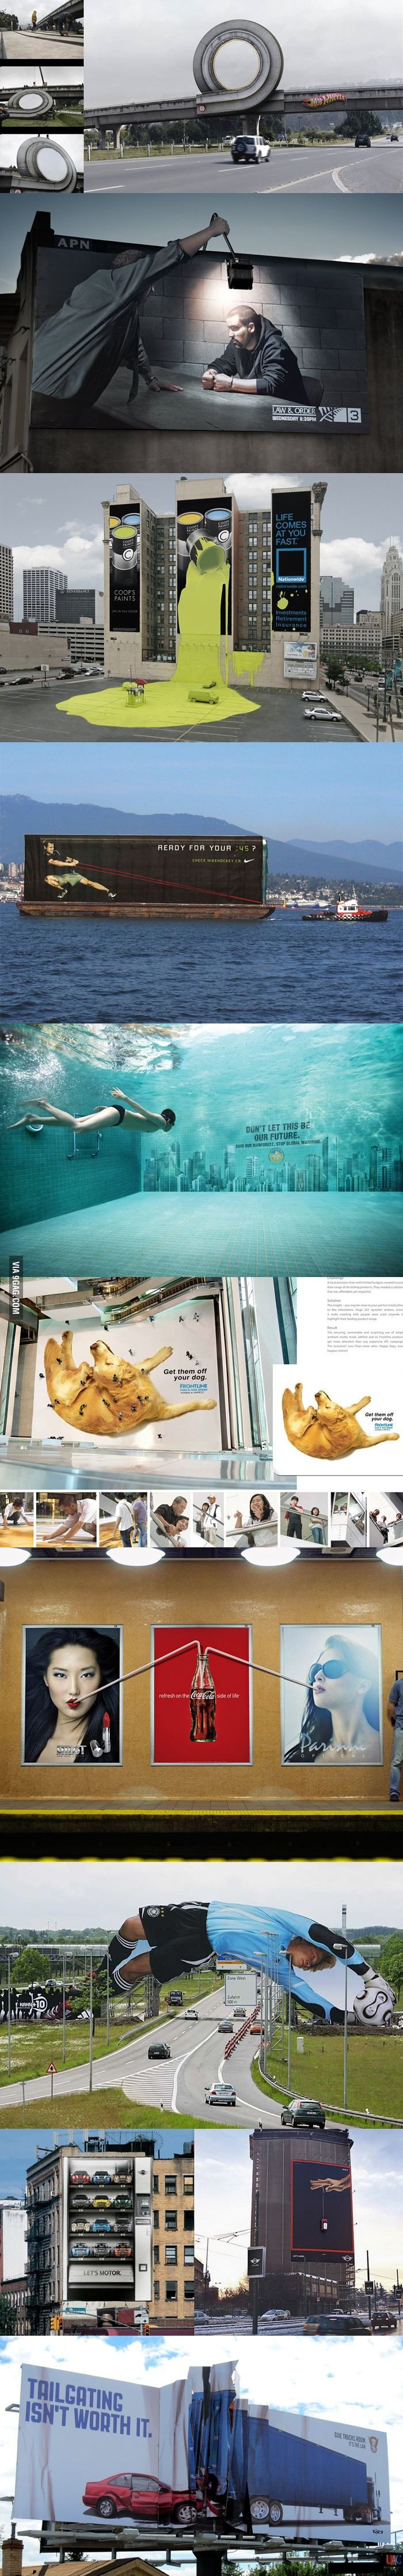 Incredible billboards from around the world.